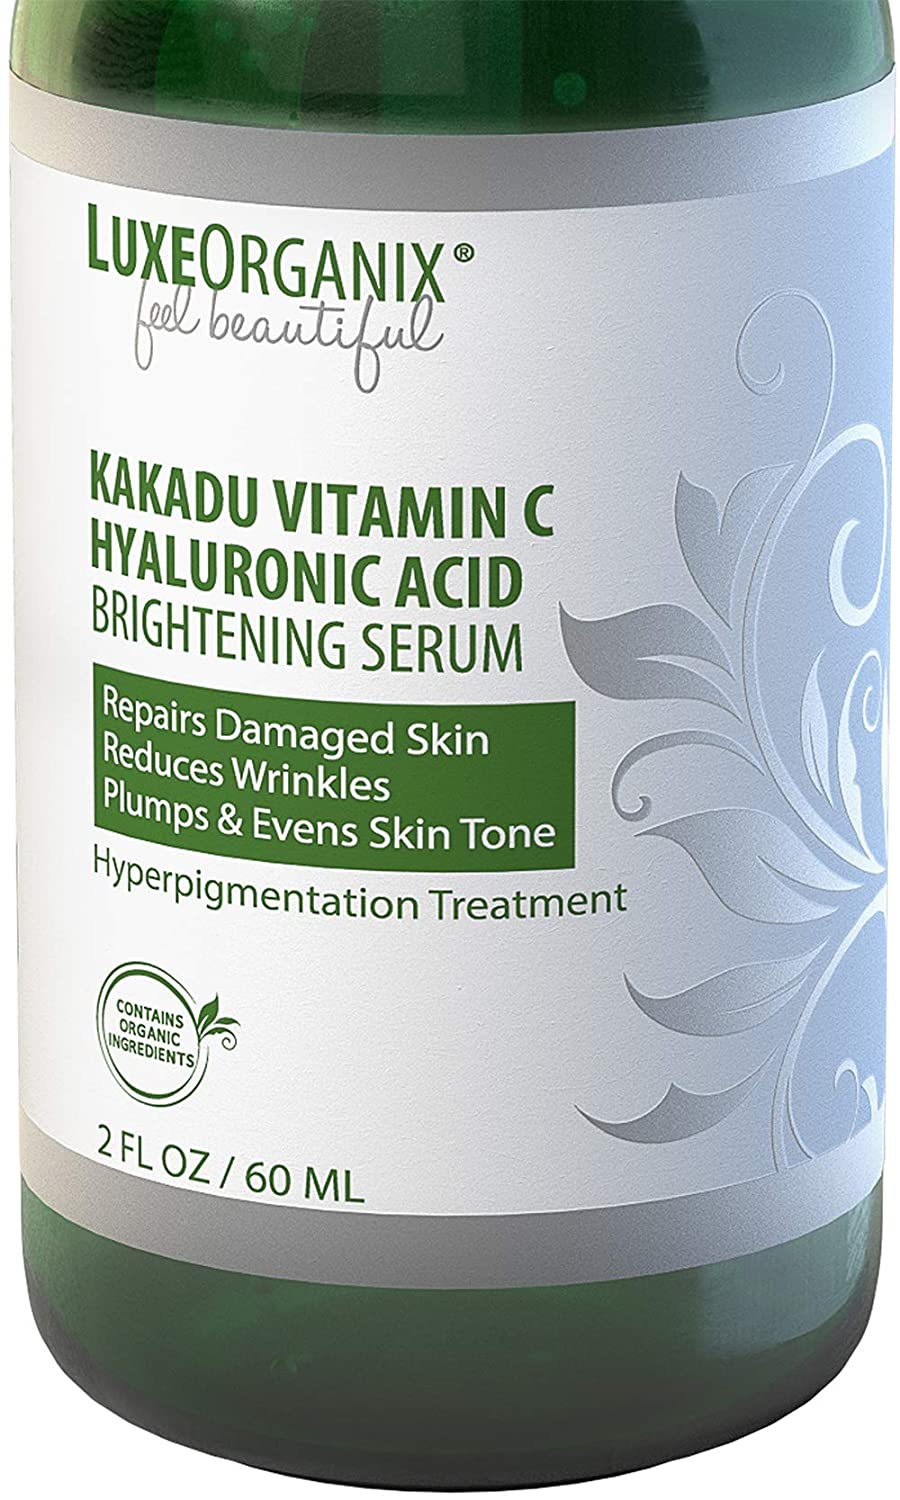 Kakadu Vitamin C Hyaluronic Acid Serum; (2 oz) Skin Brightening Treatment Lightens Dark Spots, Reduces Blemishes & Wrinkles. Hydrates & Absorbs Quickly for Visibly Improved Vibrant Skin. LuxeOrganix.